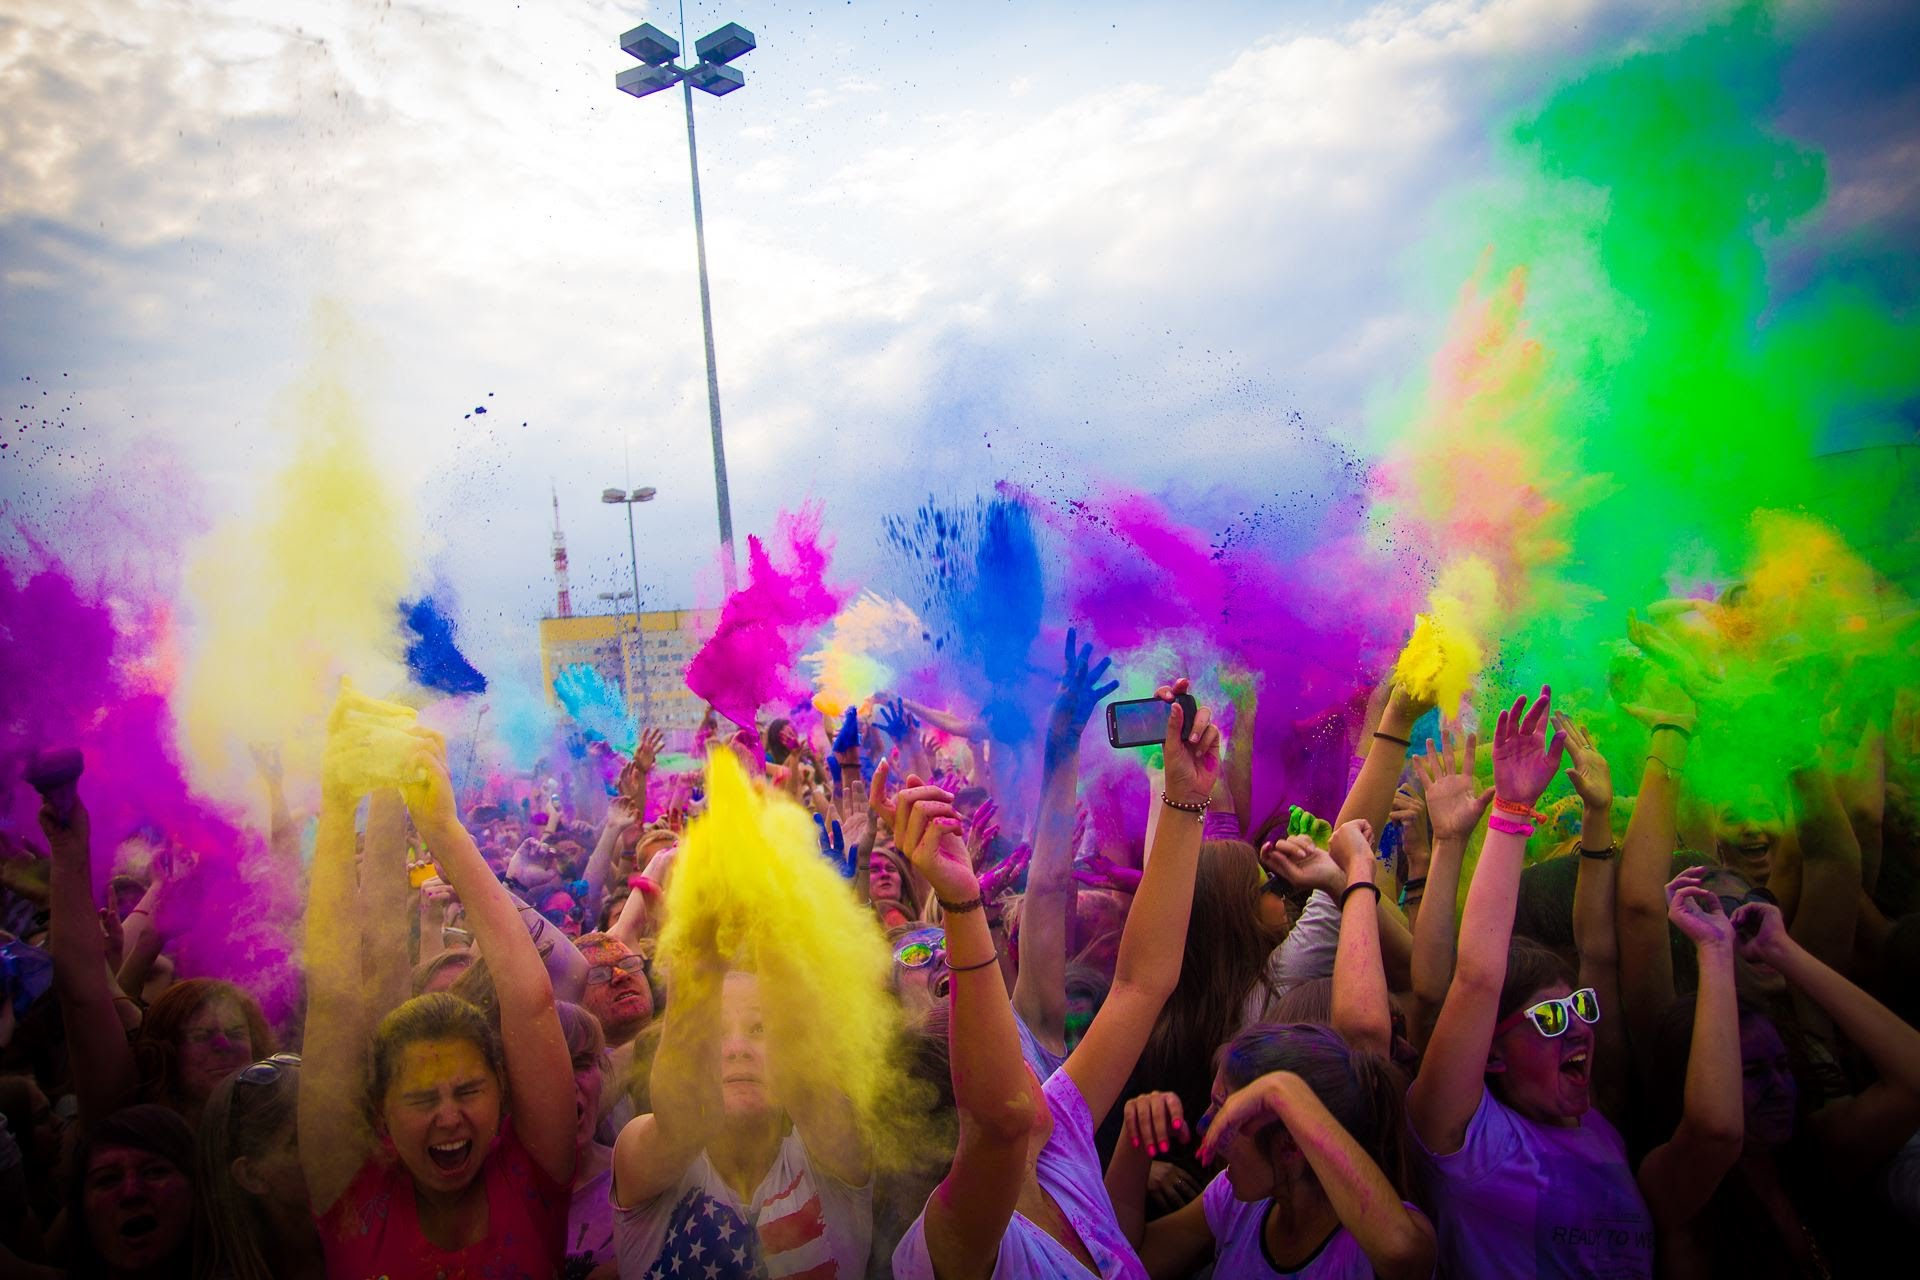 Holi Festival Wallpapers High Quality Download 1920x1280